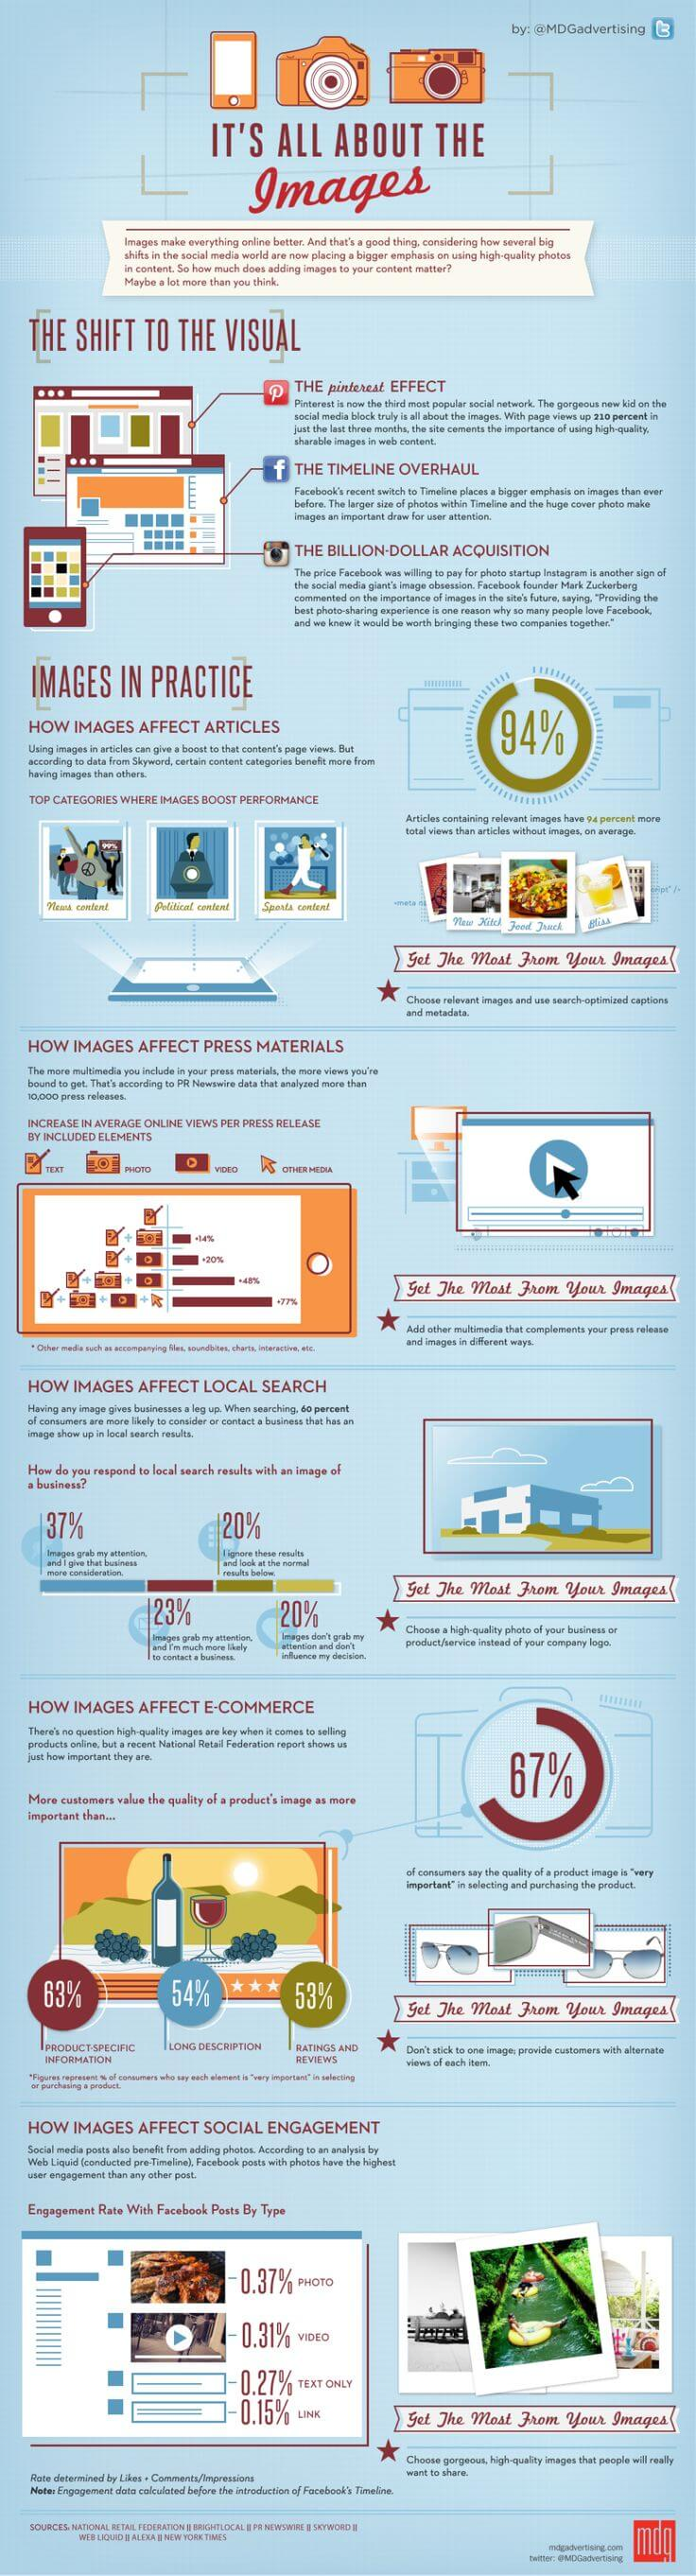 image-marketing-contenu-infographie